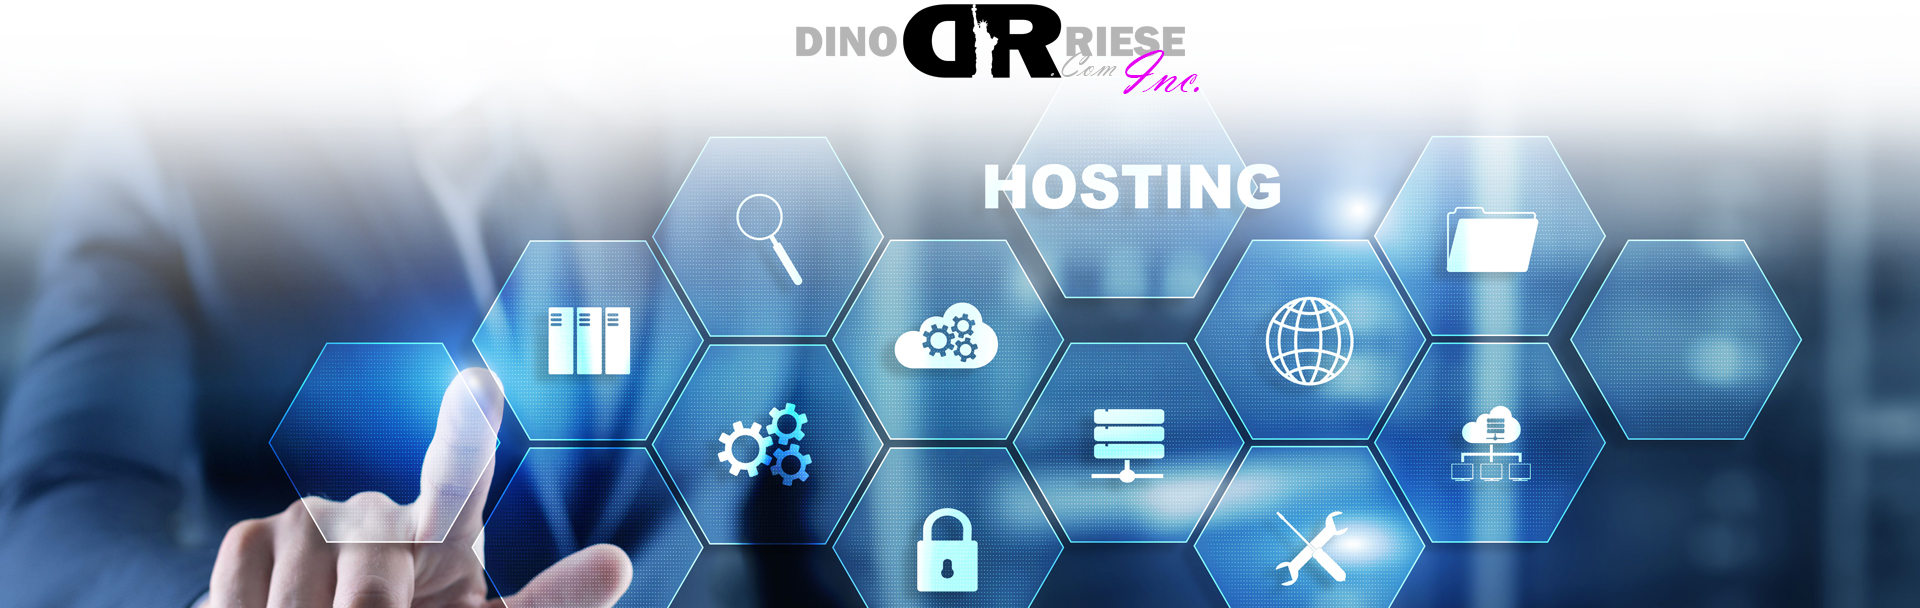 Web Hosting Professional Services | DinoRiese.com Inc. - Image